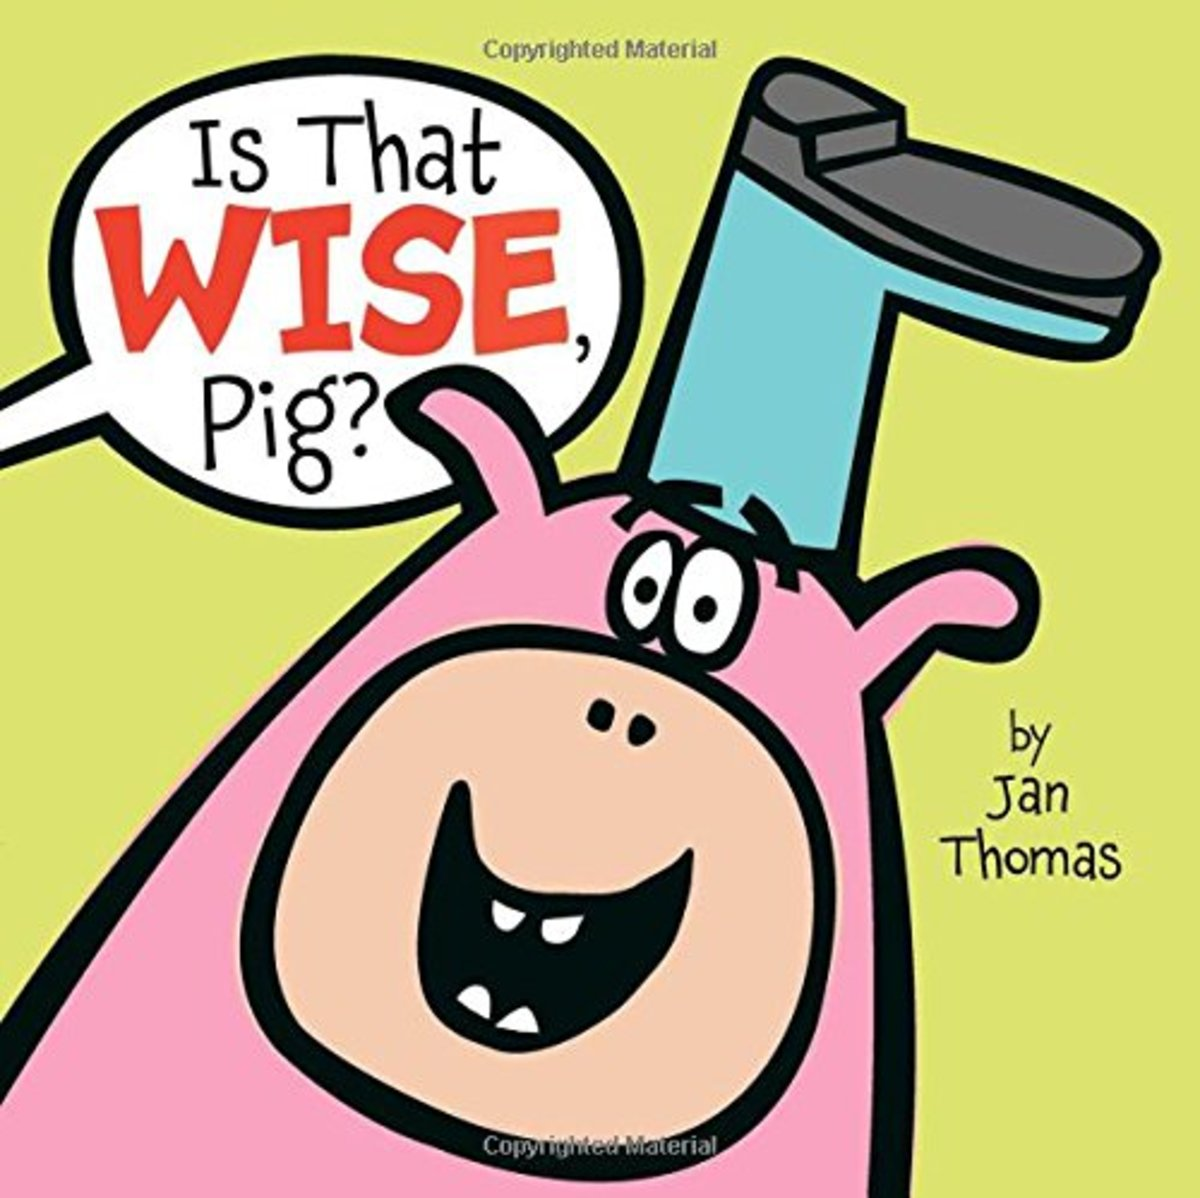 Is That Wise Pig? by Jan Thomas